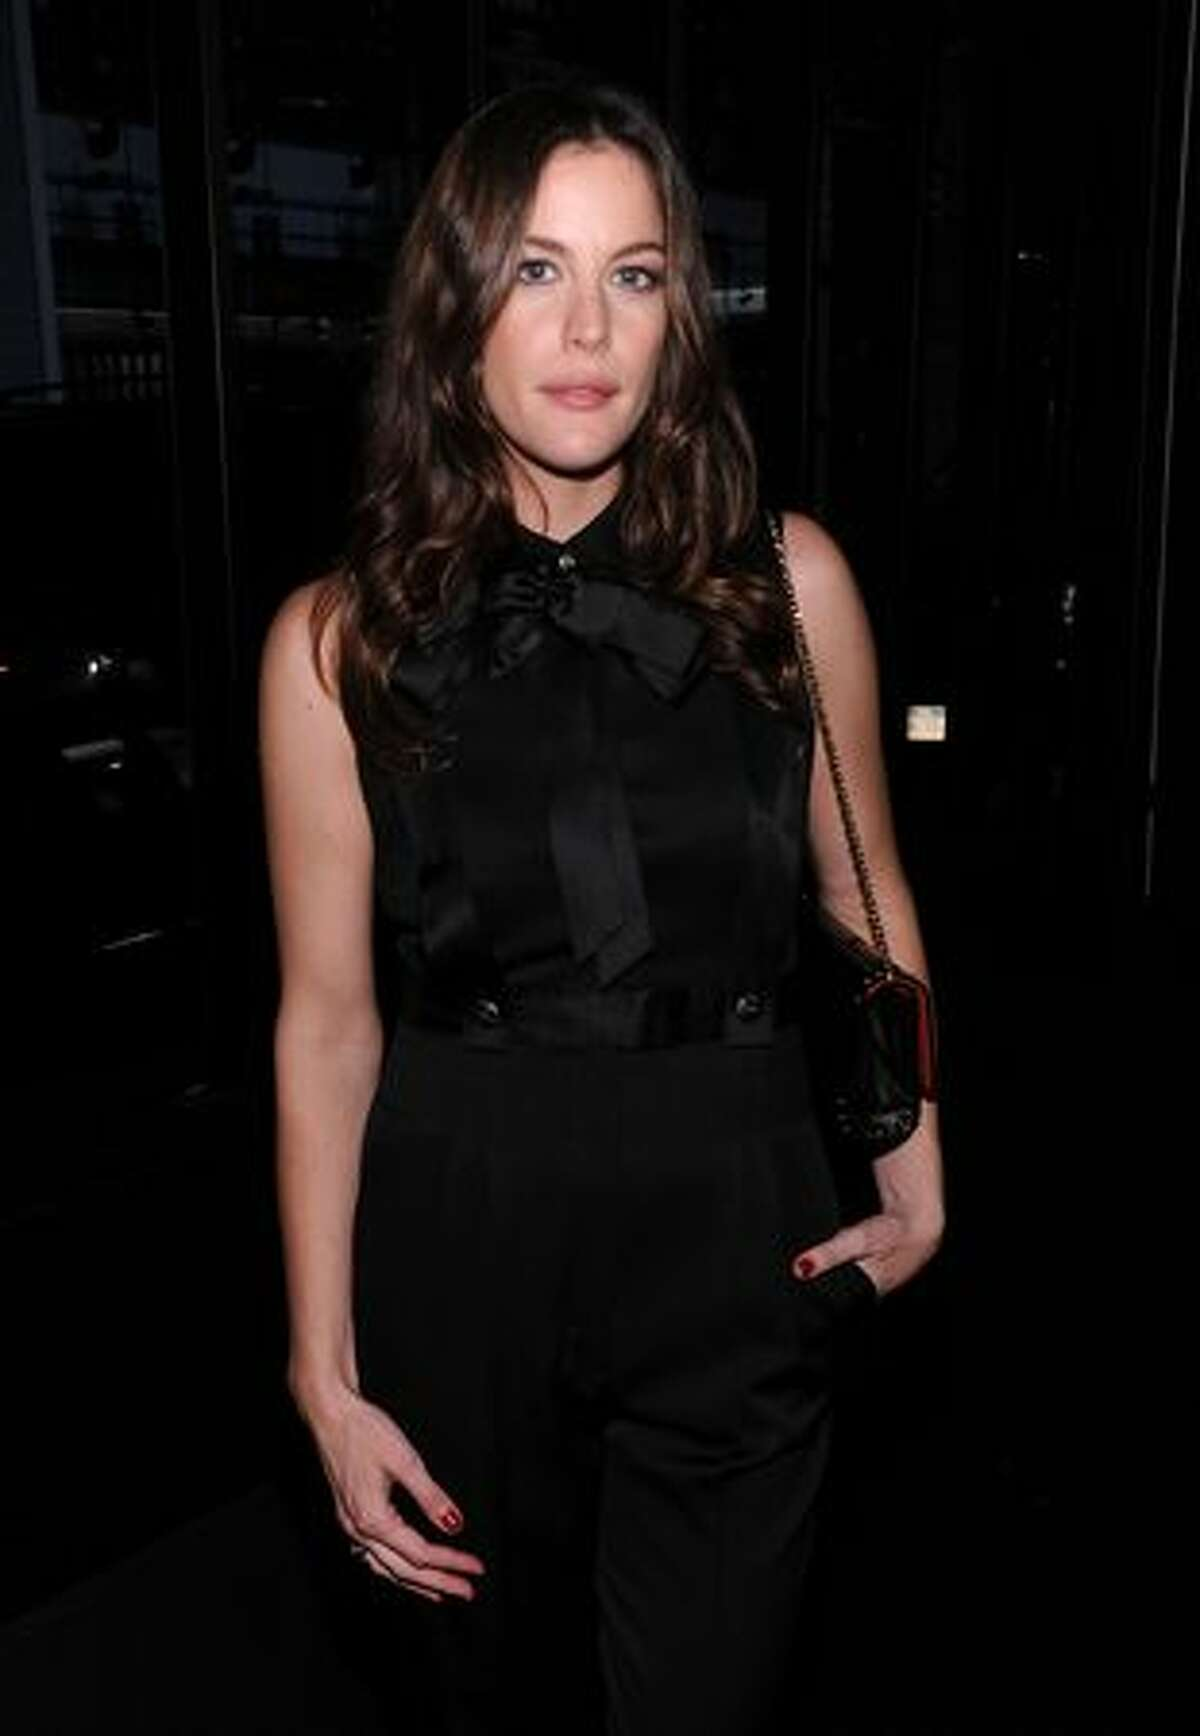 Actress Liv Tyler attends the reopening of the CHANEL SoHo Boutique at the Chanel Boutique Soho in New York City.